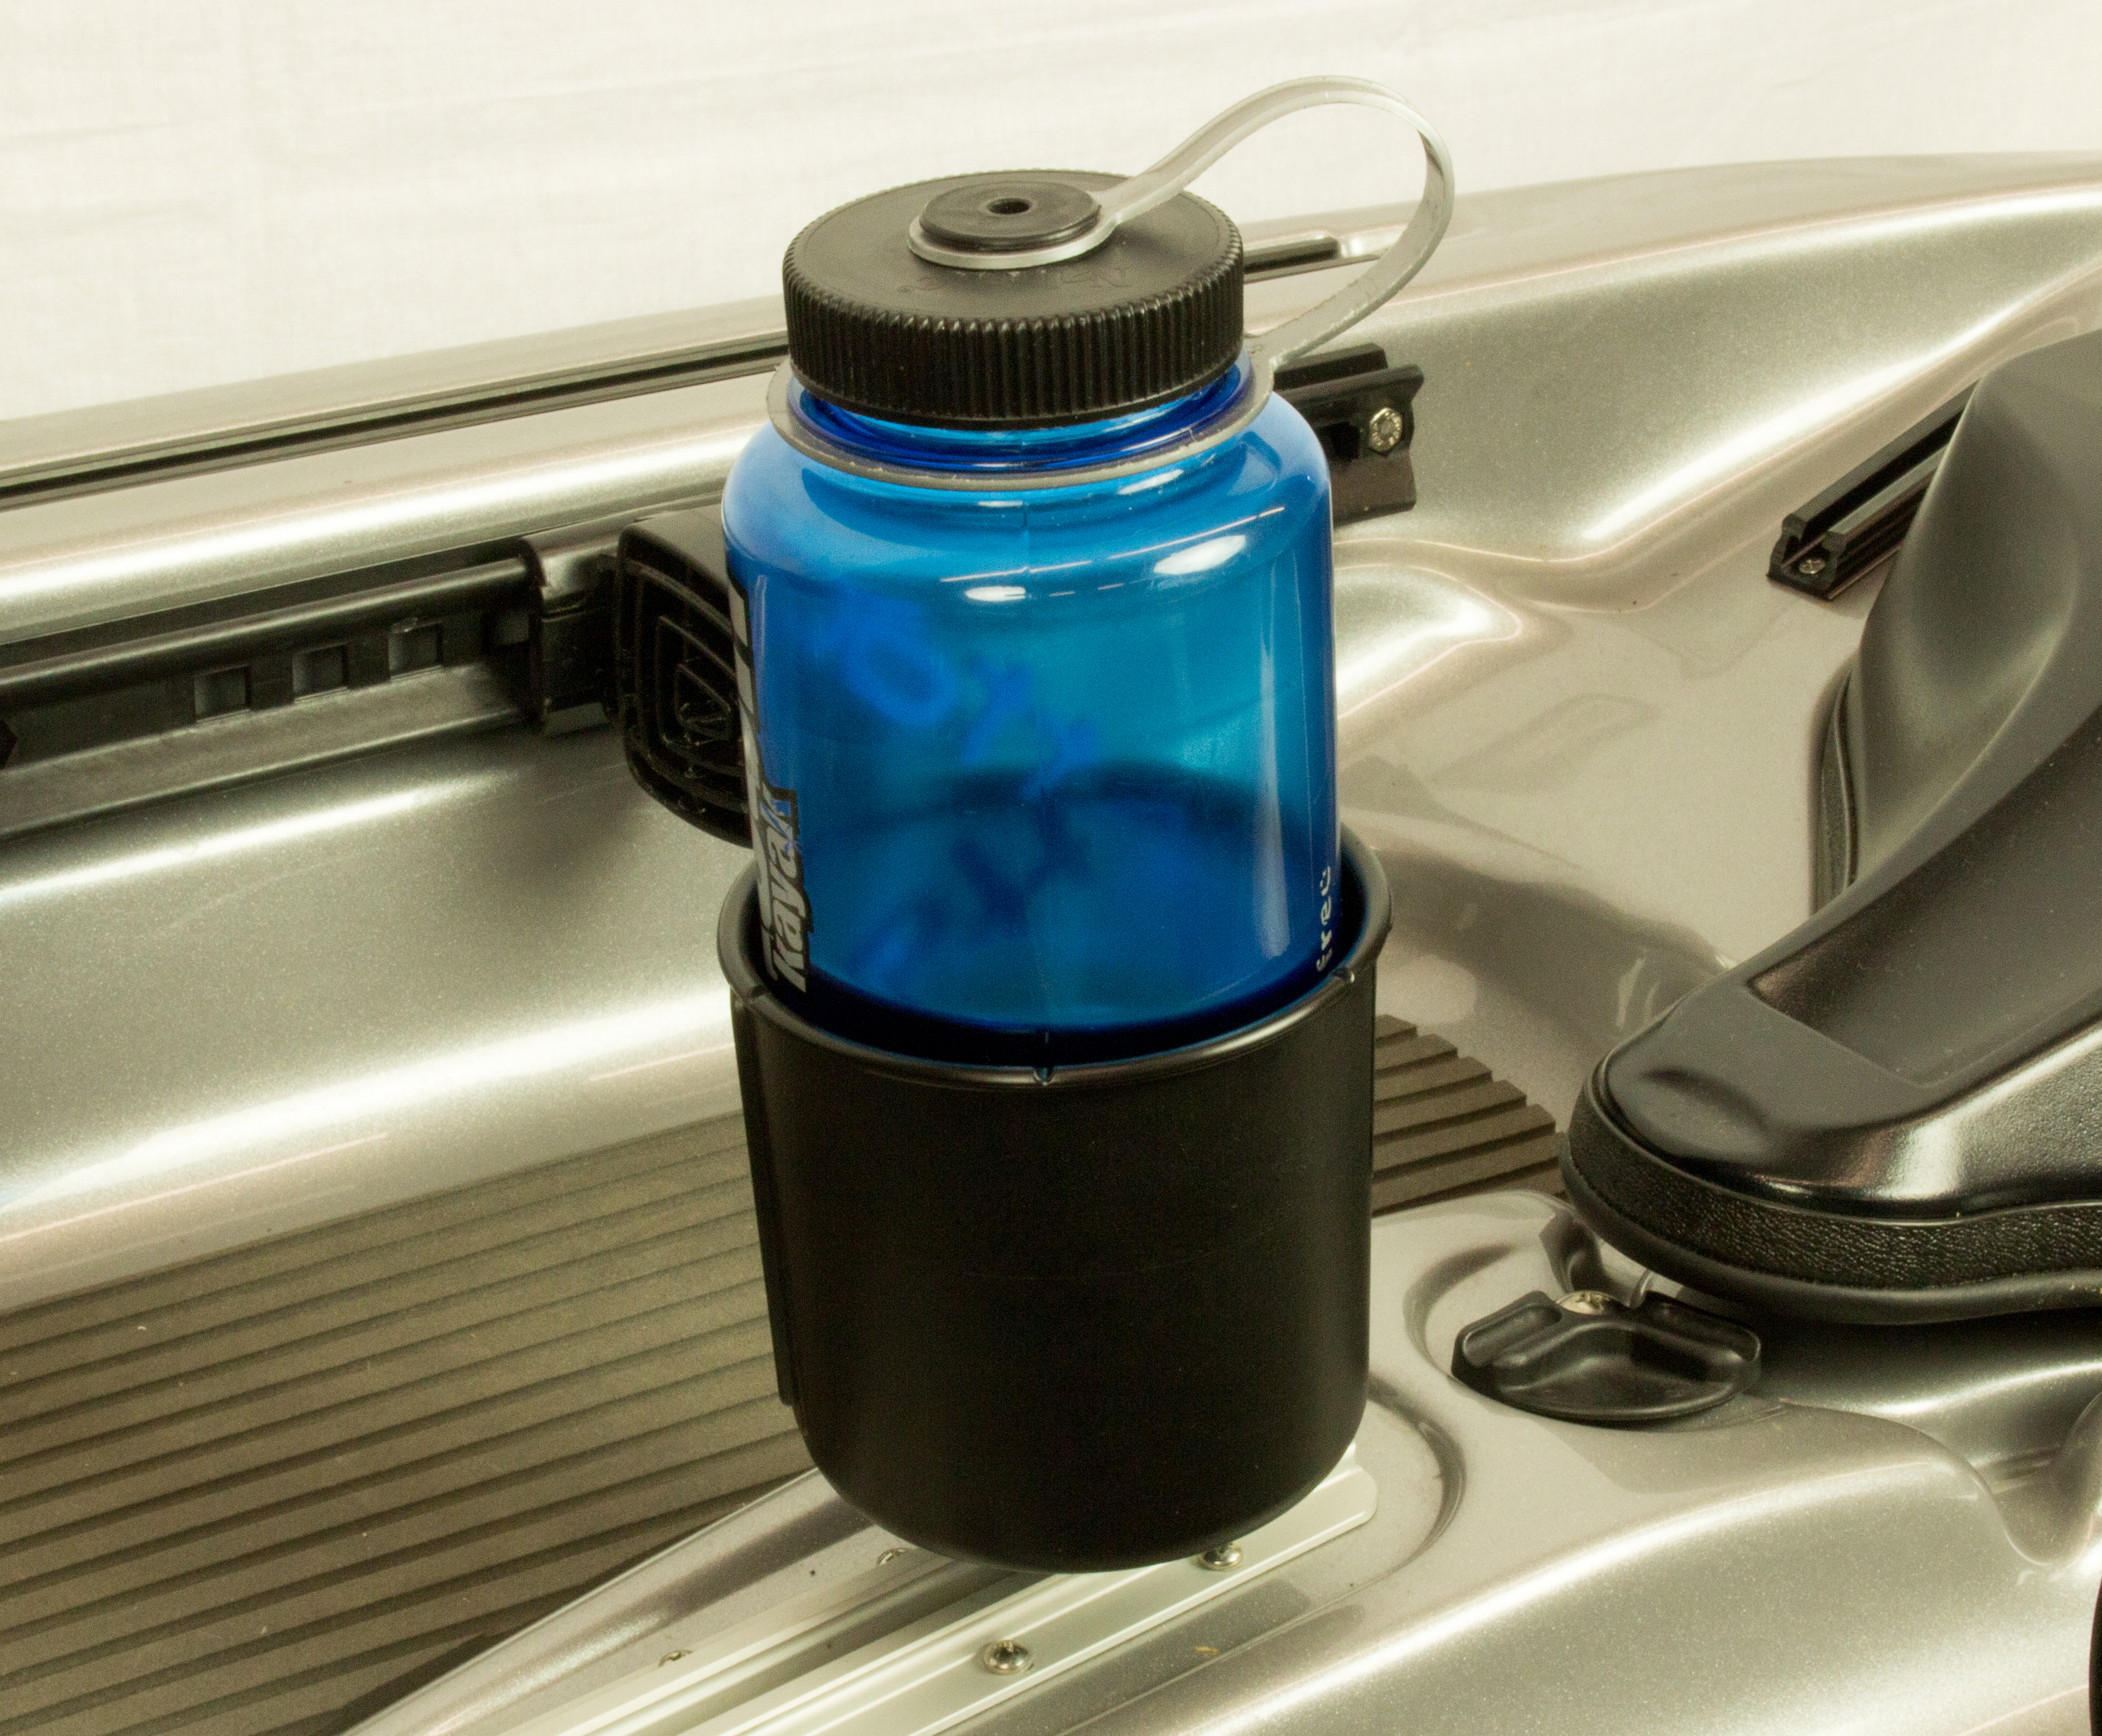 yakattack-multimount-cup-holder-nalgene-bottle-sso-1001-2.jpg